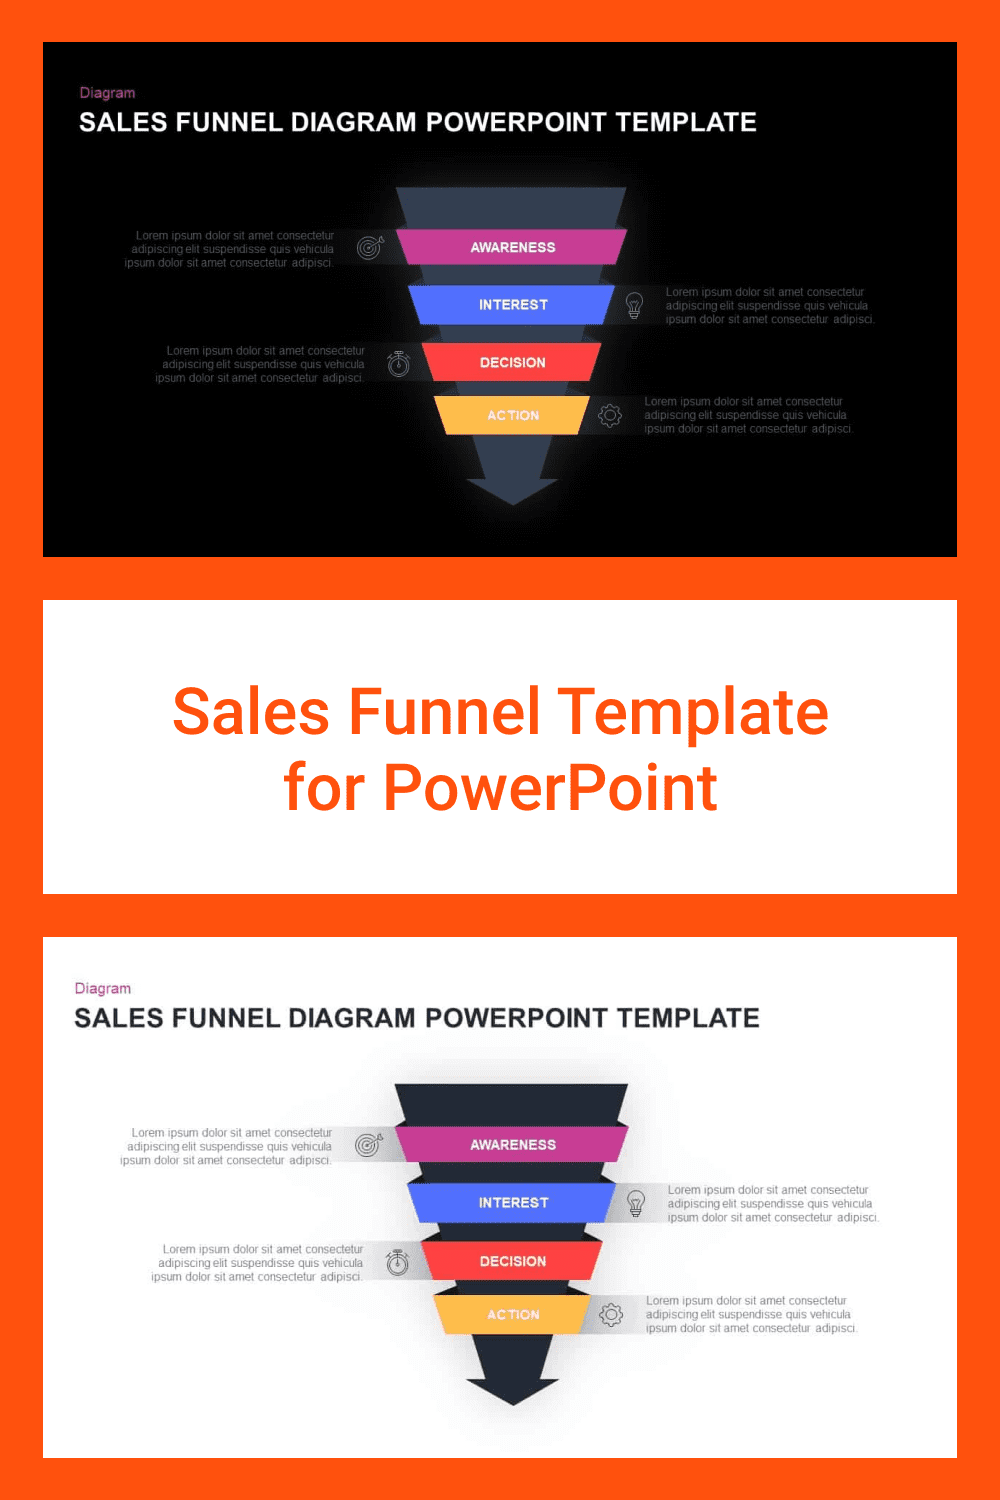 Sales Funnel Template for PowerPoint.